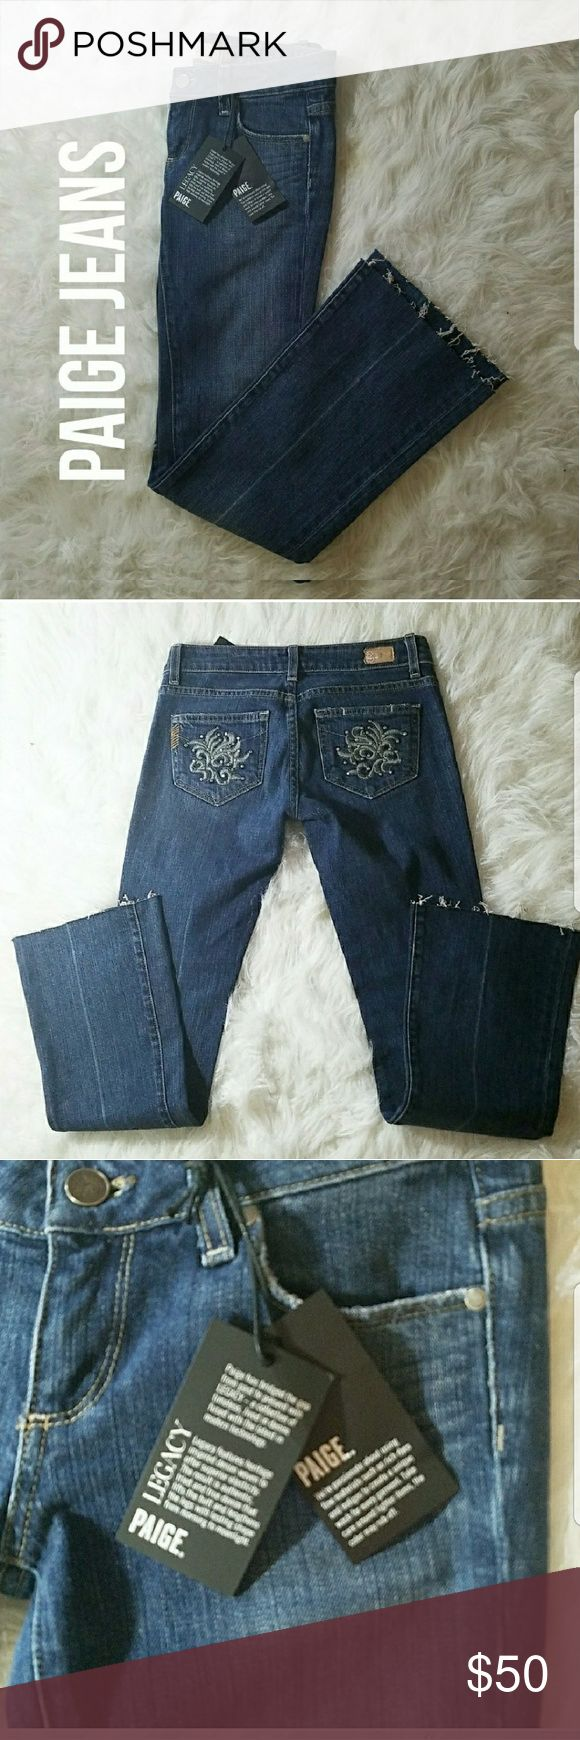 NWT Paige Jeans Laurel Canyon NWT Paige Jeans. Premium Denim sold at Nordstroms. Size 25. 29 inch inseam Laurel Canyon Style Tags: Follow Game Share Game Fall Fashion Denim PAIGE Jeans